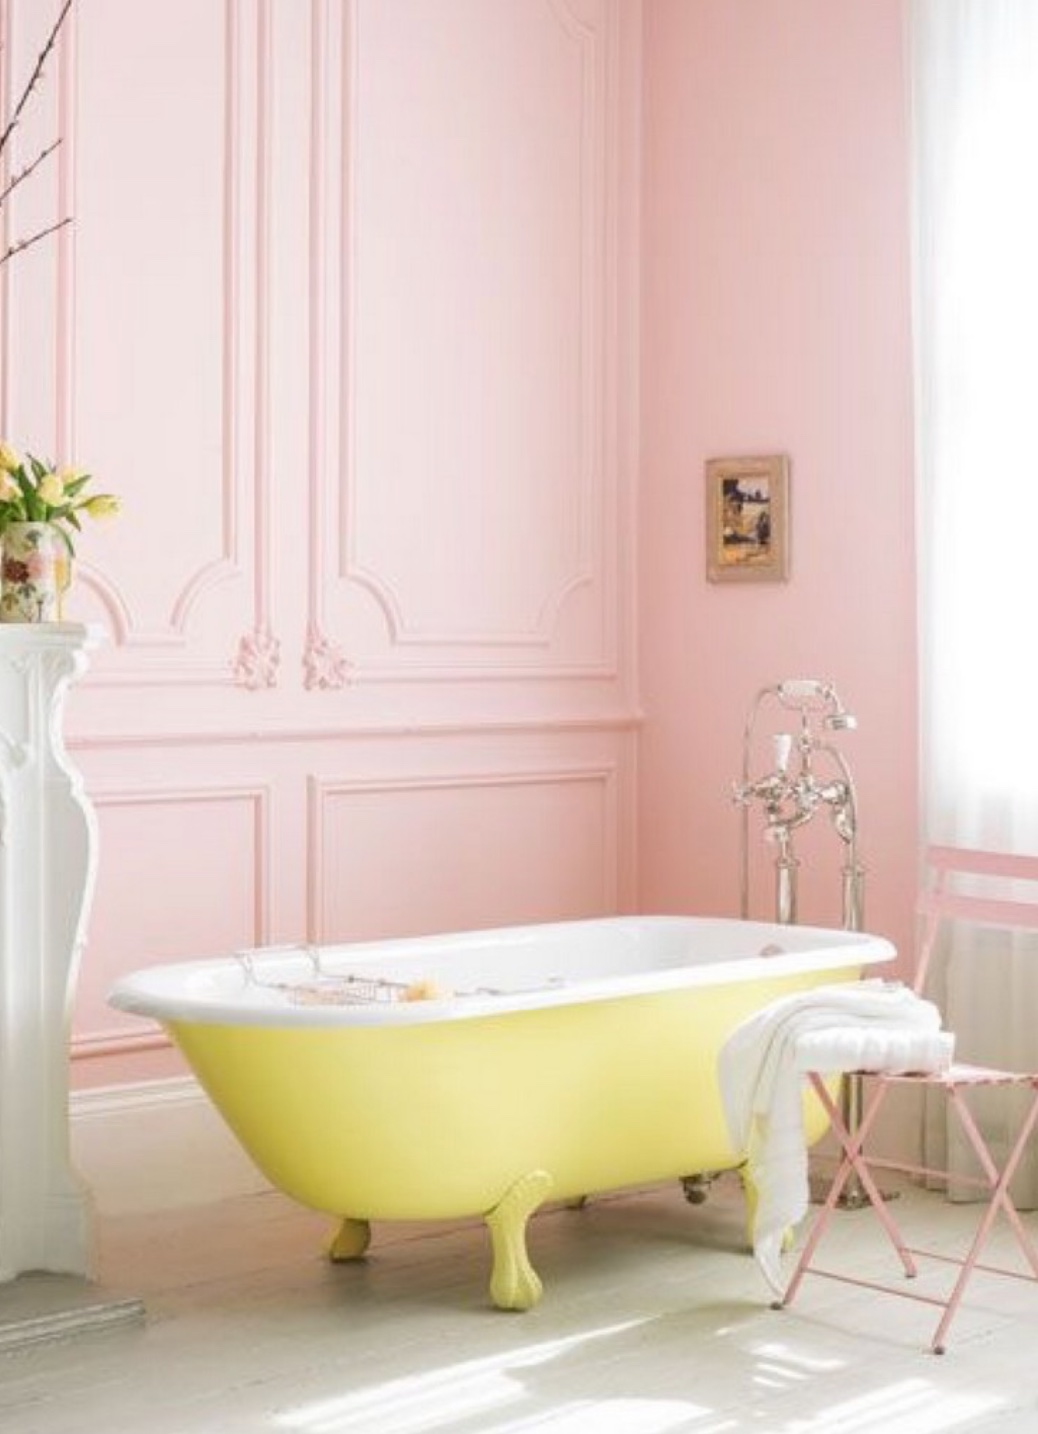 bathroom with yellow bath